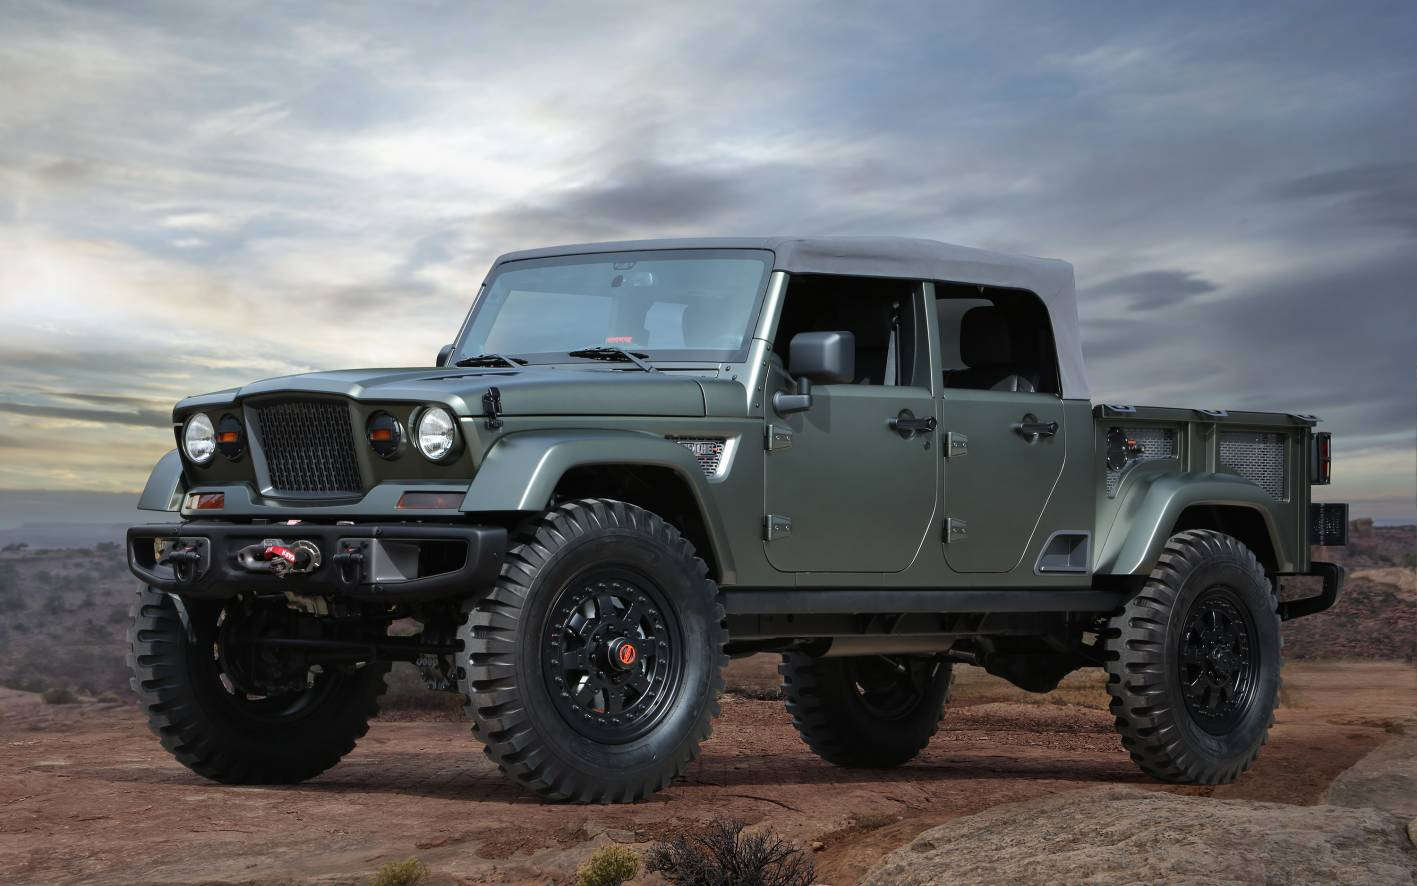 LEAKED: Jeep Scrambler Ute towing and GVM details